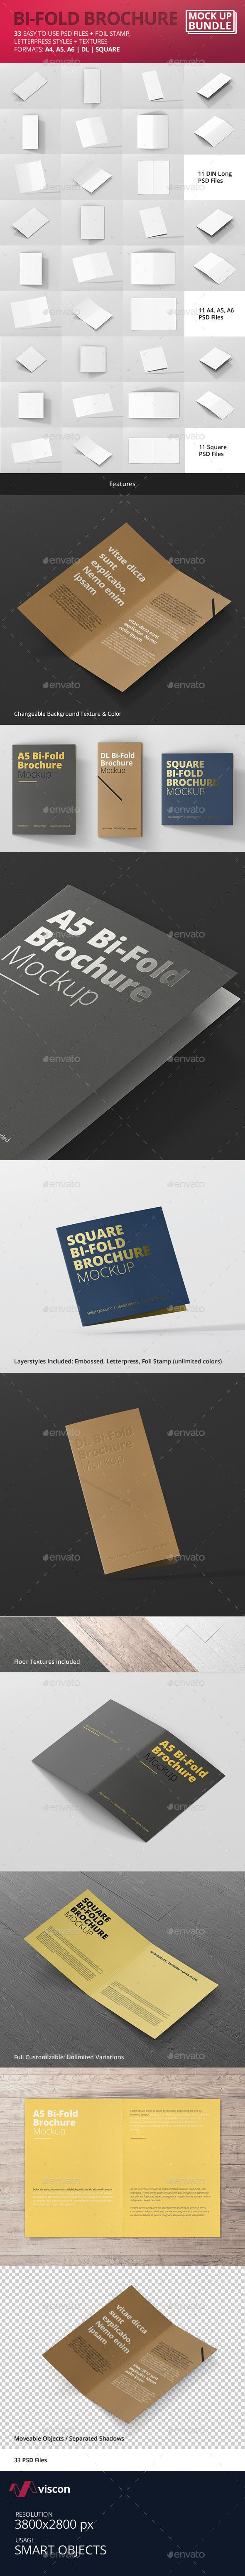 Bi-Fold Brochure Mock-Up Bundle. Download here: graphicriver.net/...